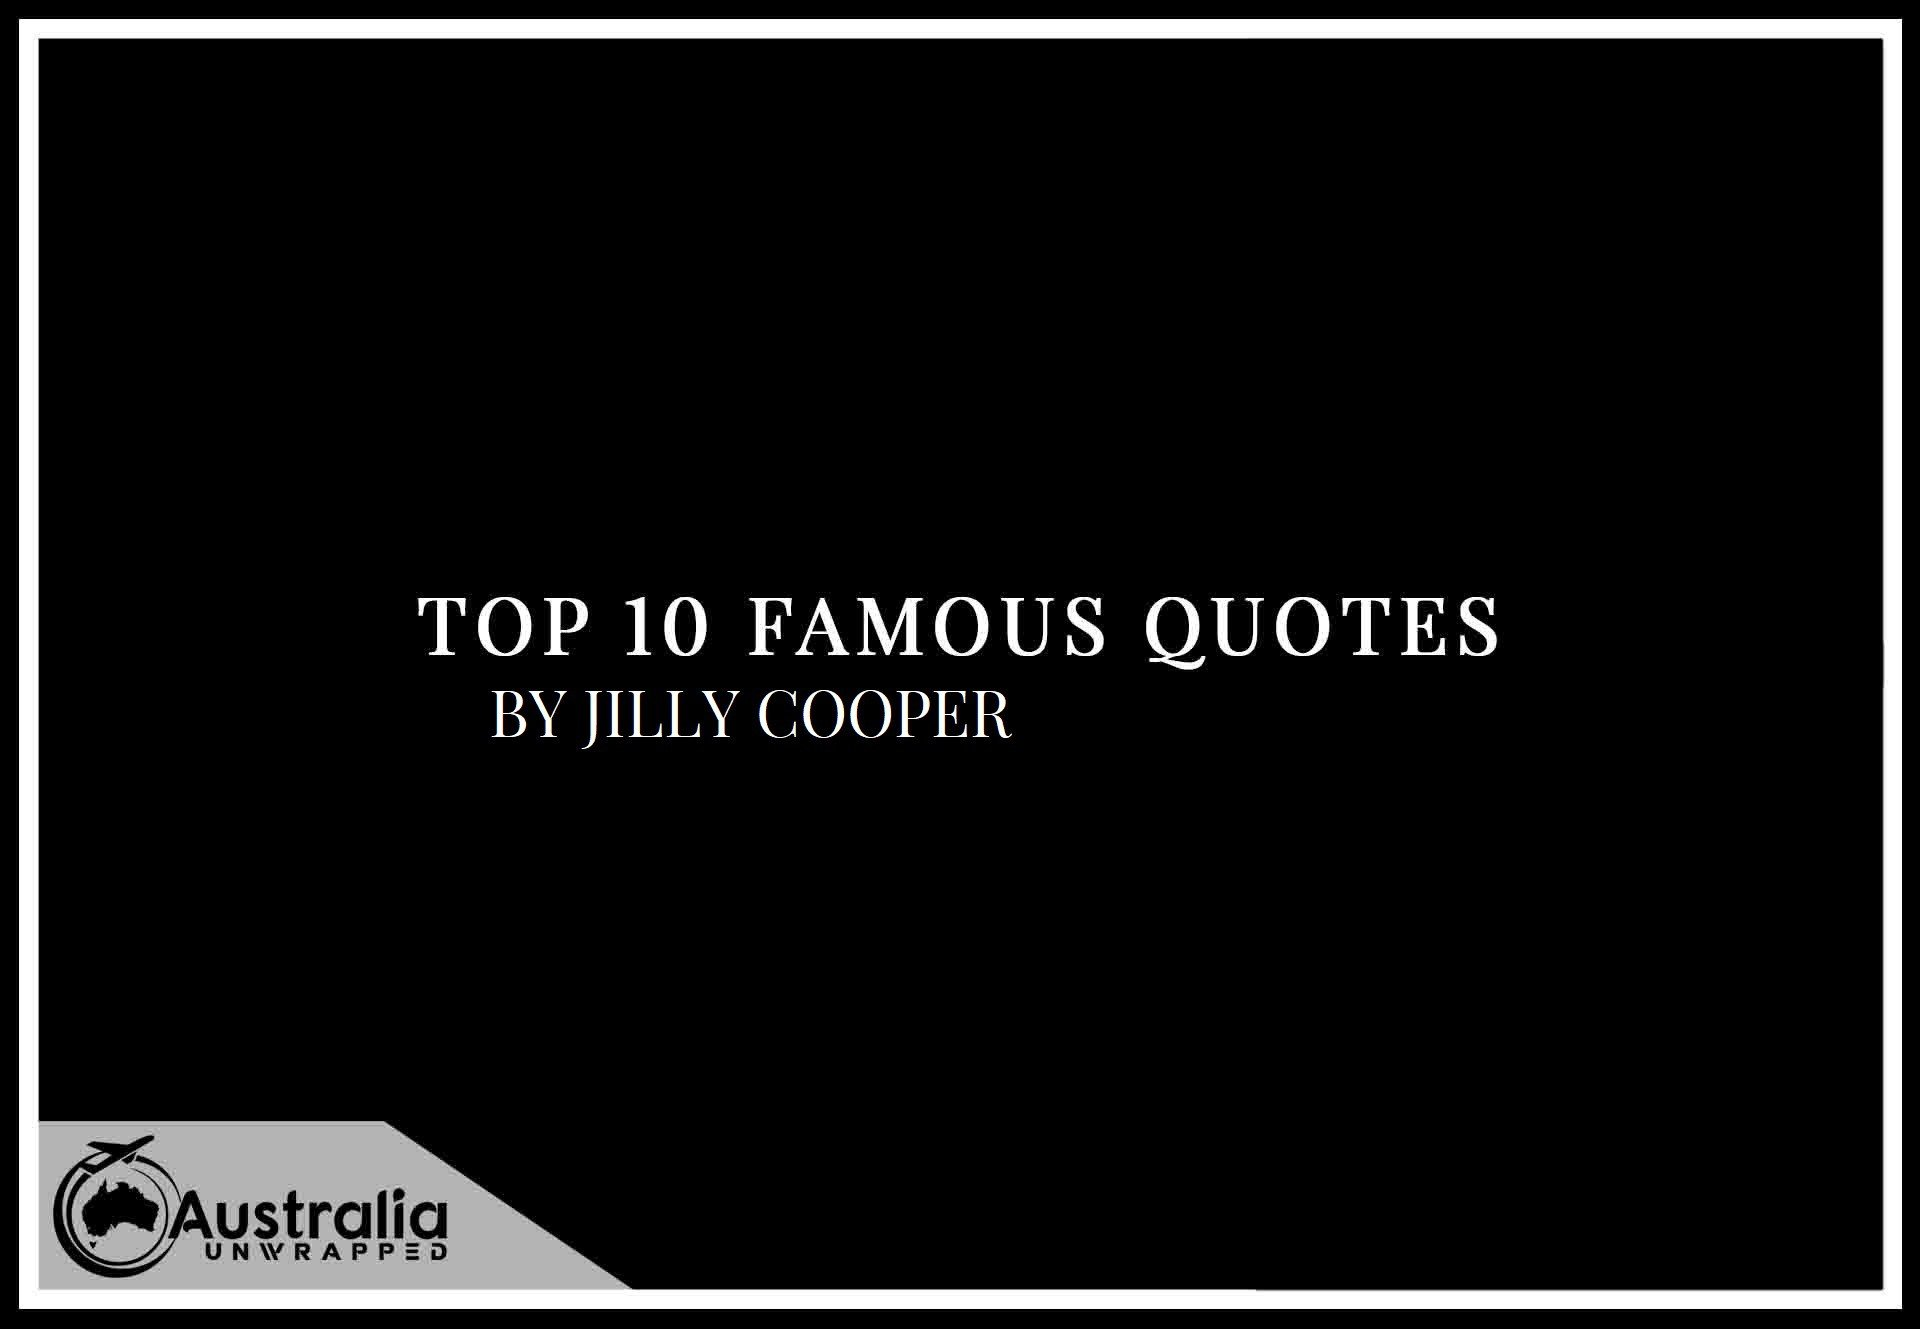 Top 10 Famous Quotes by Author Jilly Cooper